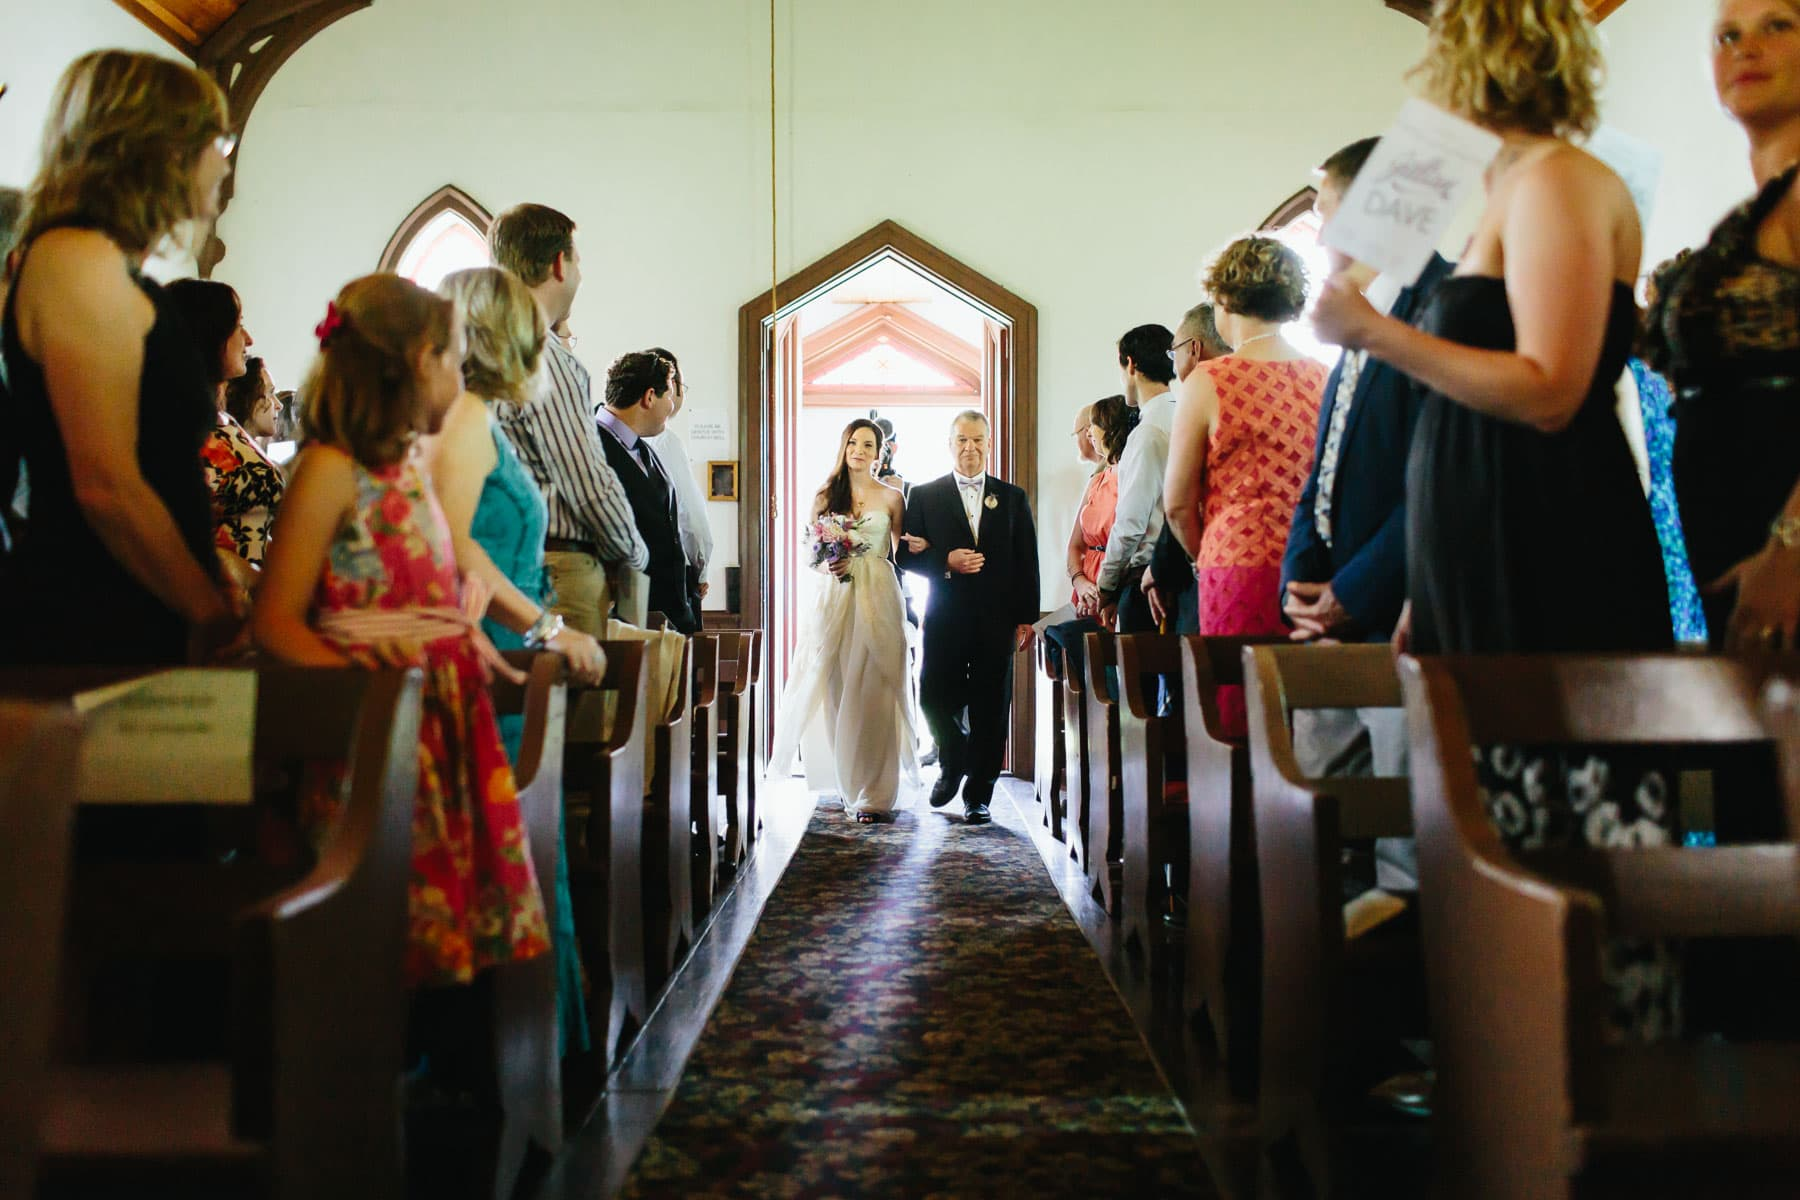 Bride and father walk down the aisle inside this small chapel at a rustic Ball's Falls wedding.